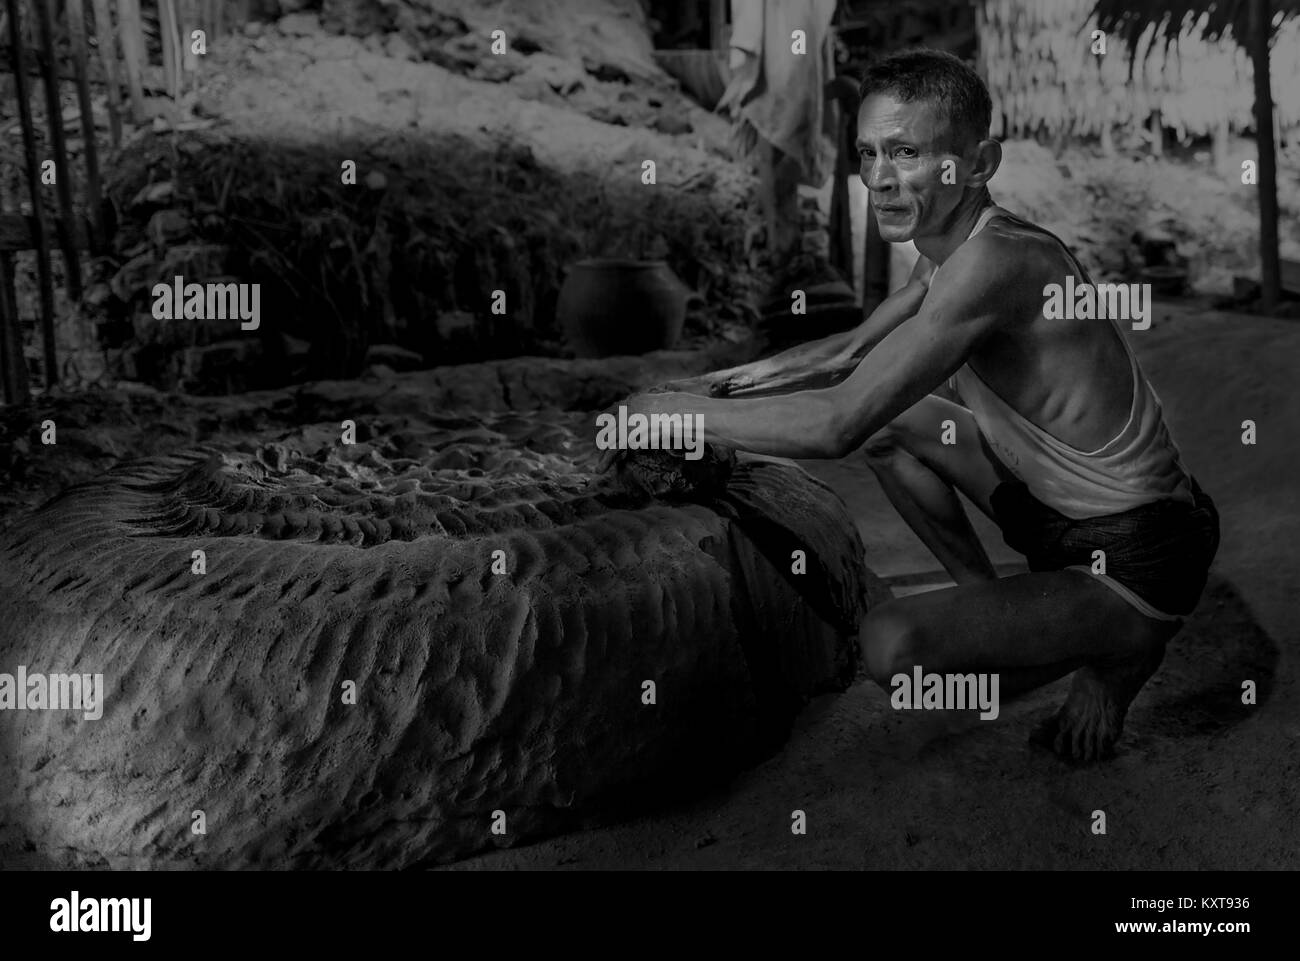 Men making pot from clay in Yangon, Myanmar - Stock Image